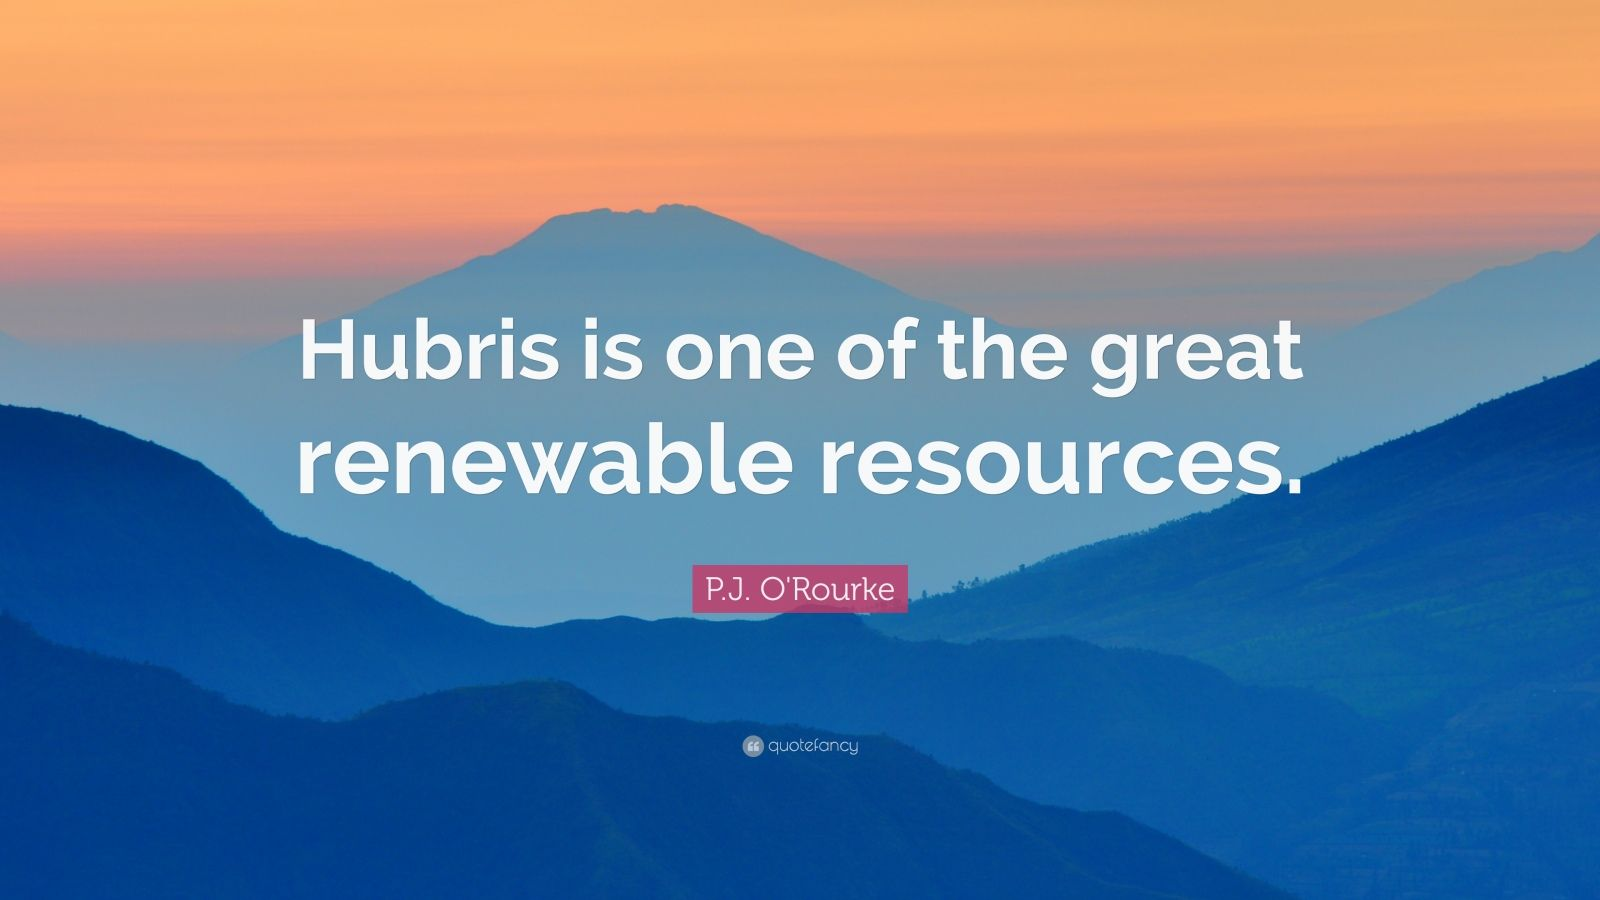 """P.J. O'Rourke Quote: """"Hubris is one of the great renewable resources."""""""